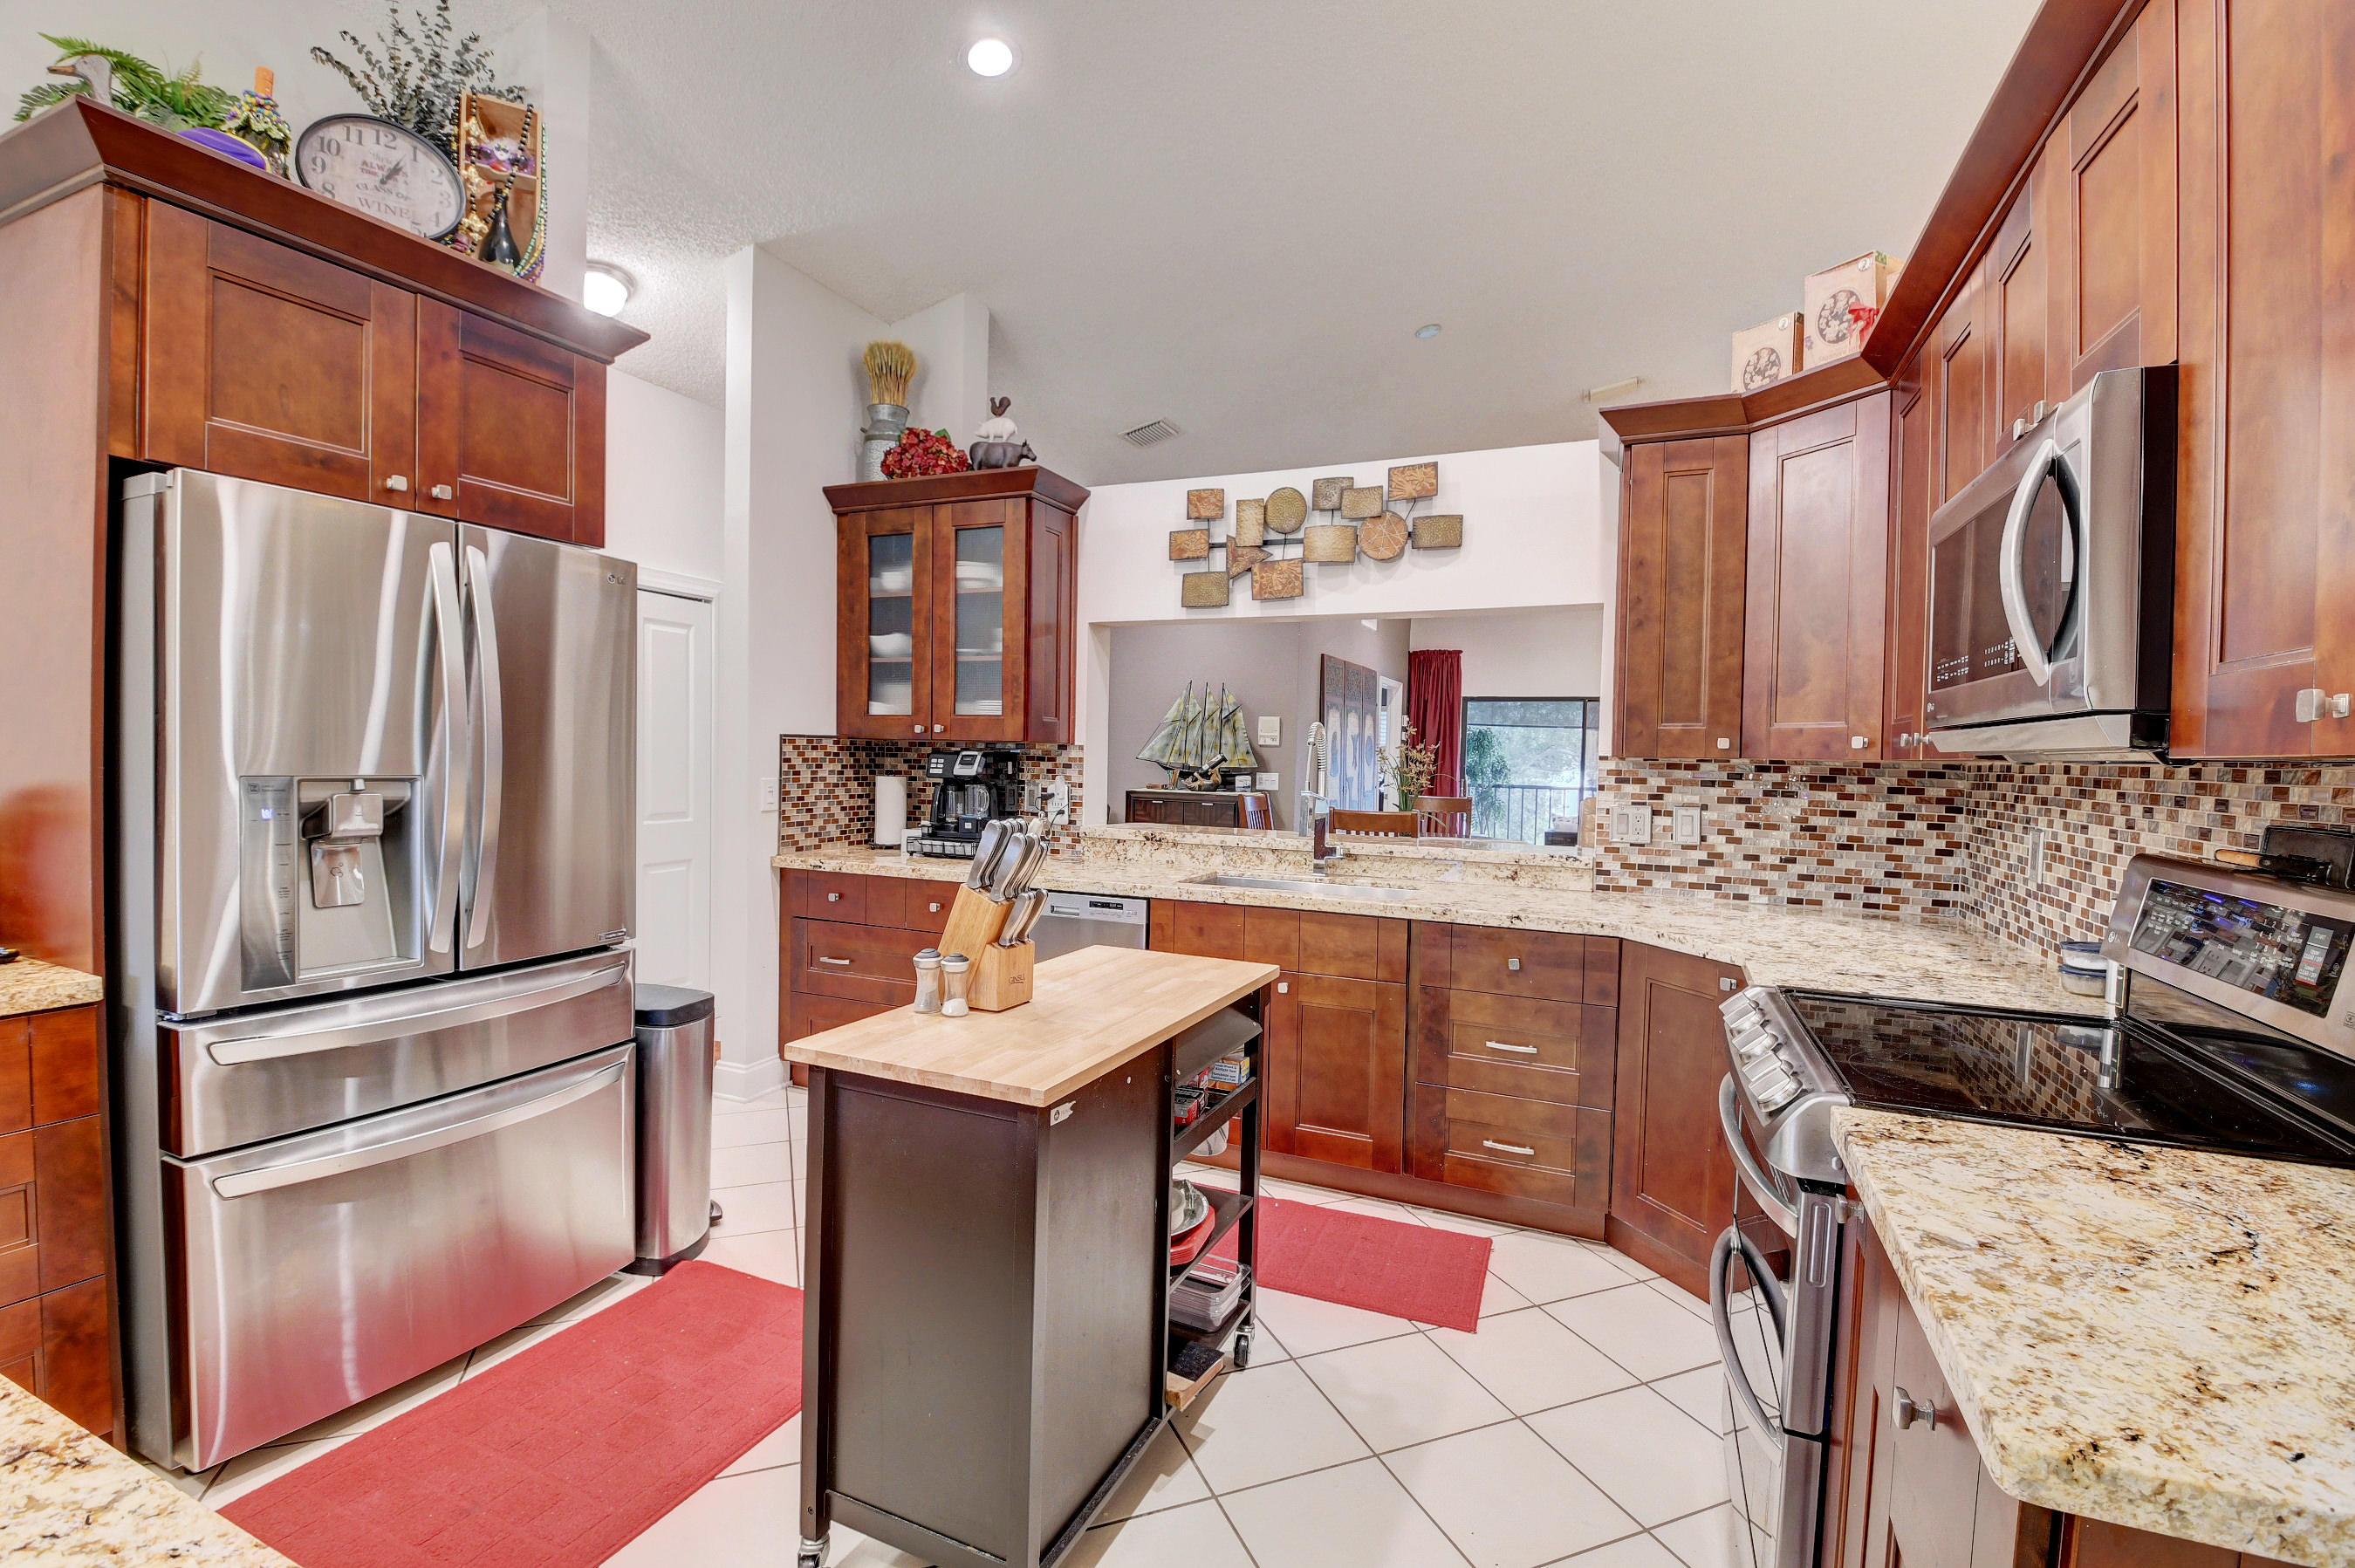 9628 Pavarotti Terrace 201 Boynton Beach, FL 33437 small photo 10